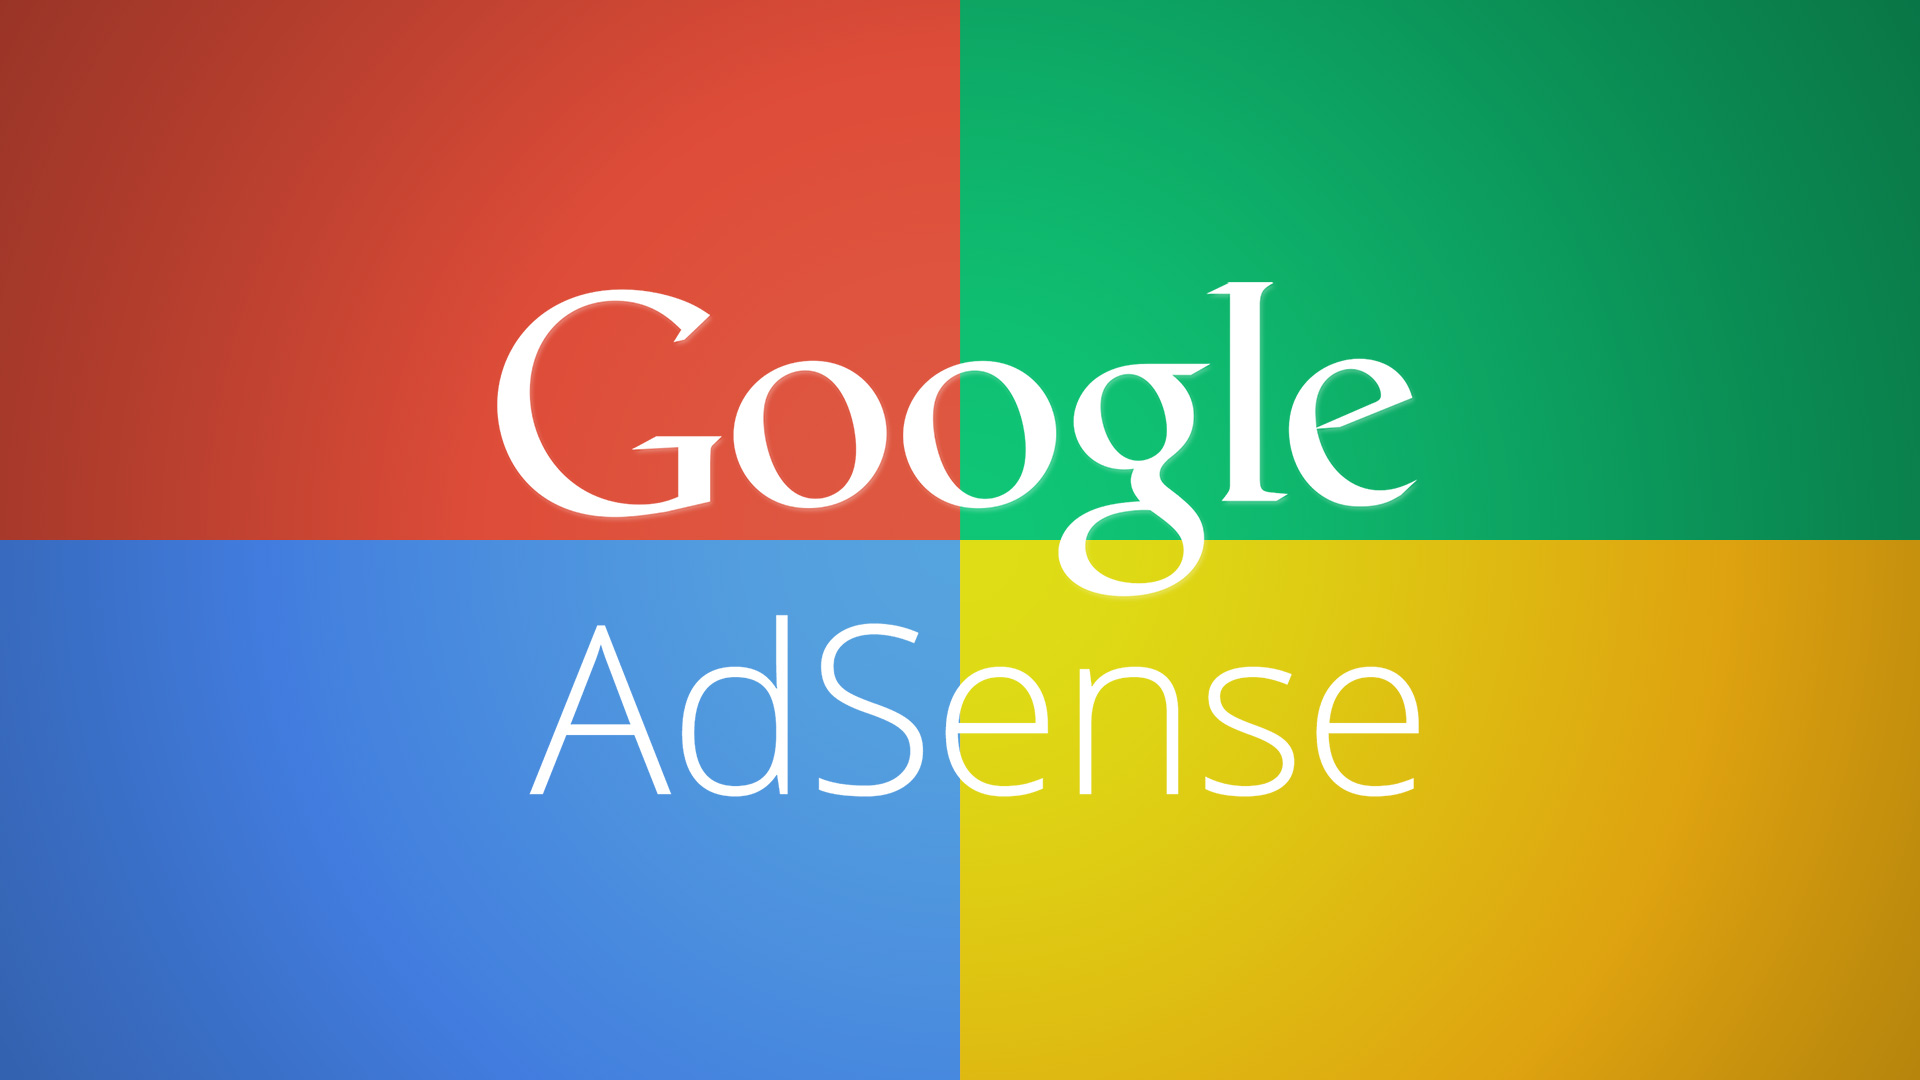 Google AdSense Introduces Educación Inicial